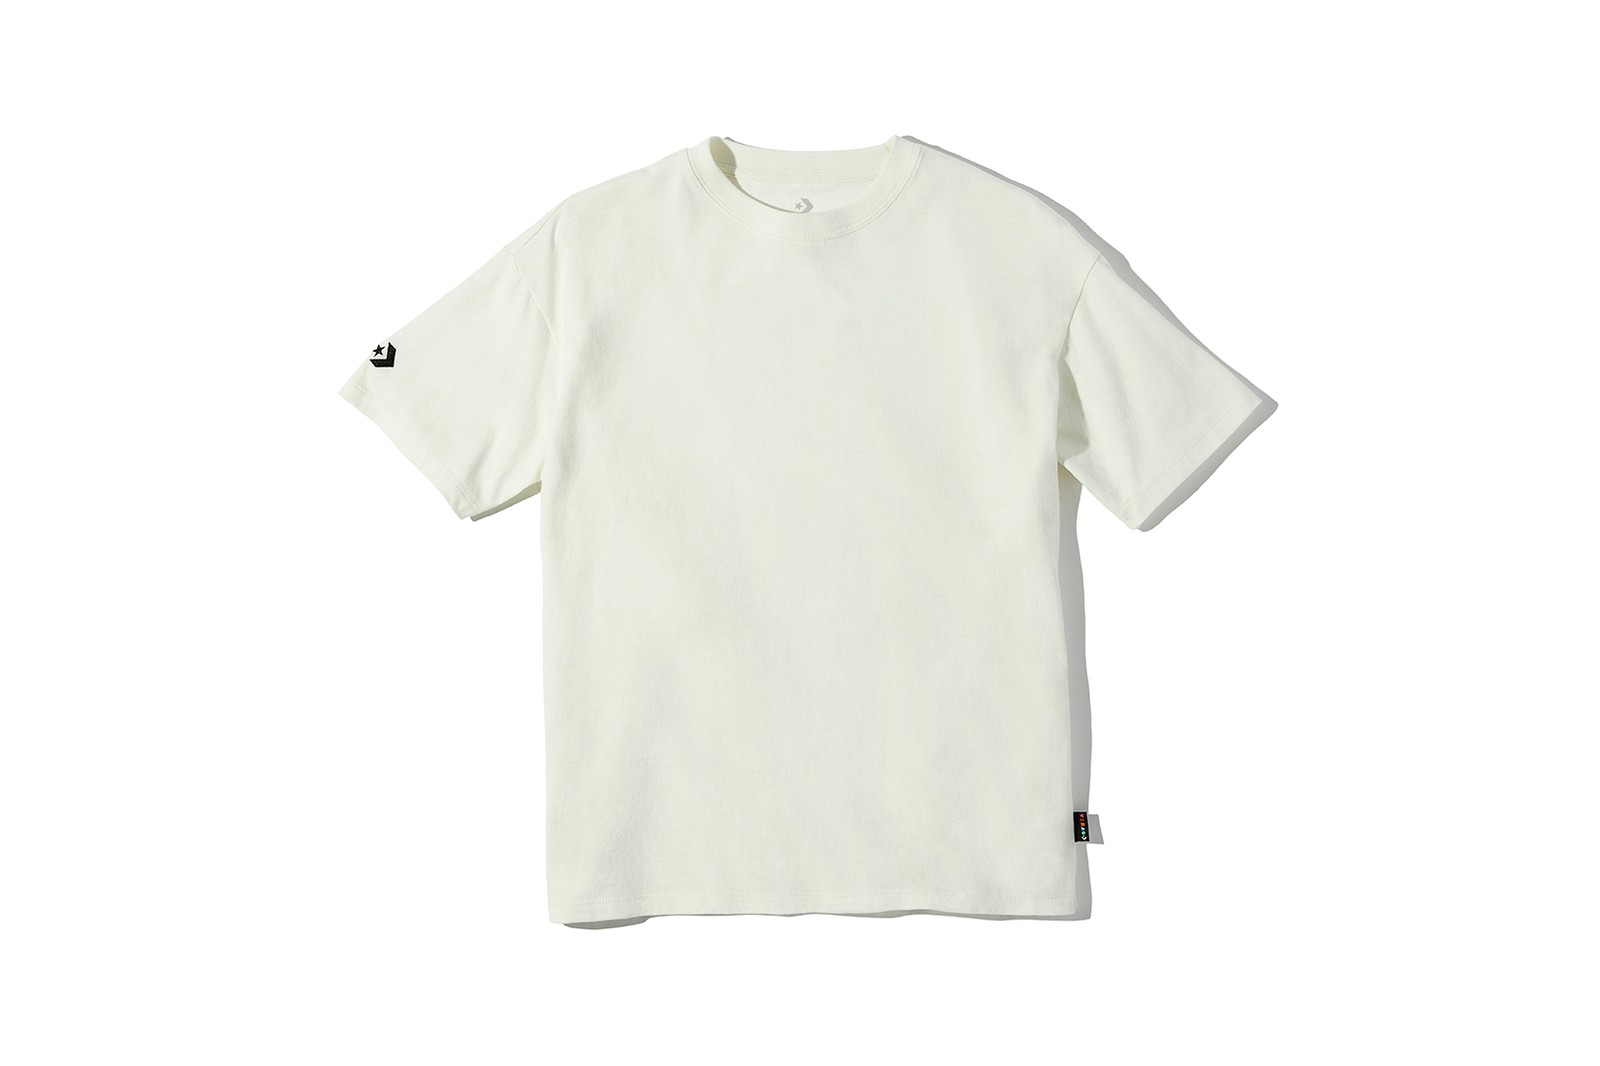 converse shapes genderless apparel collection hoodies crew neck sweaters lookbook